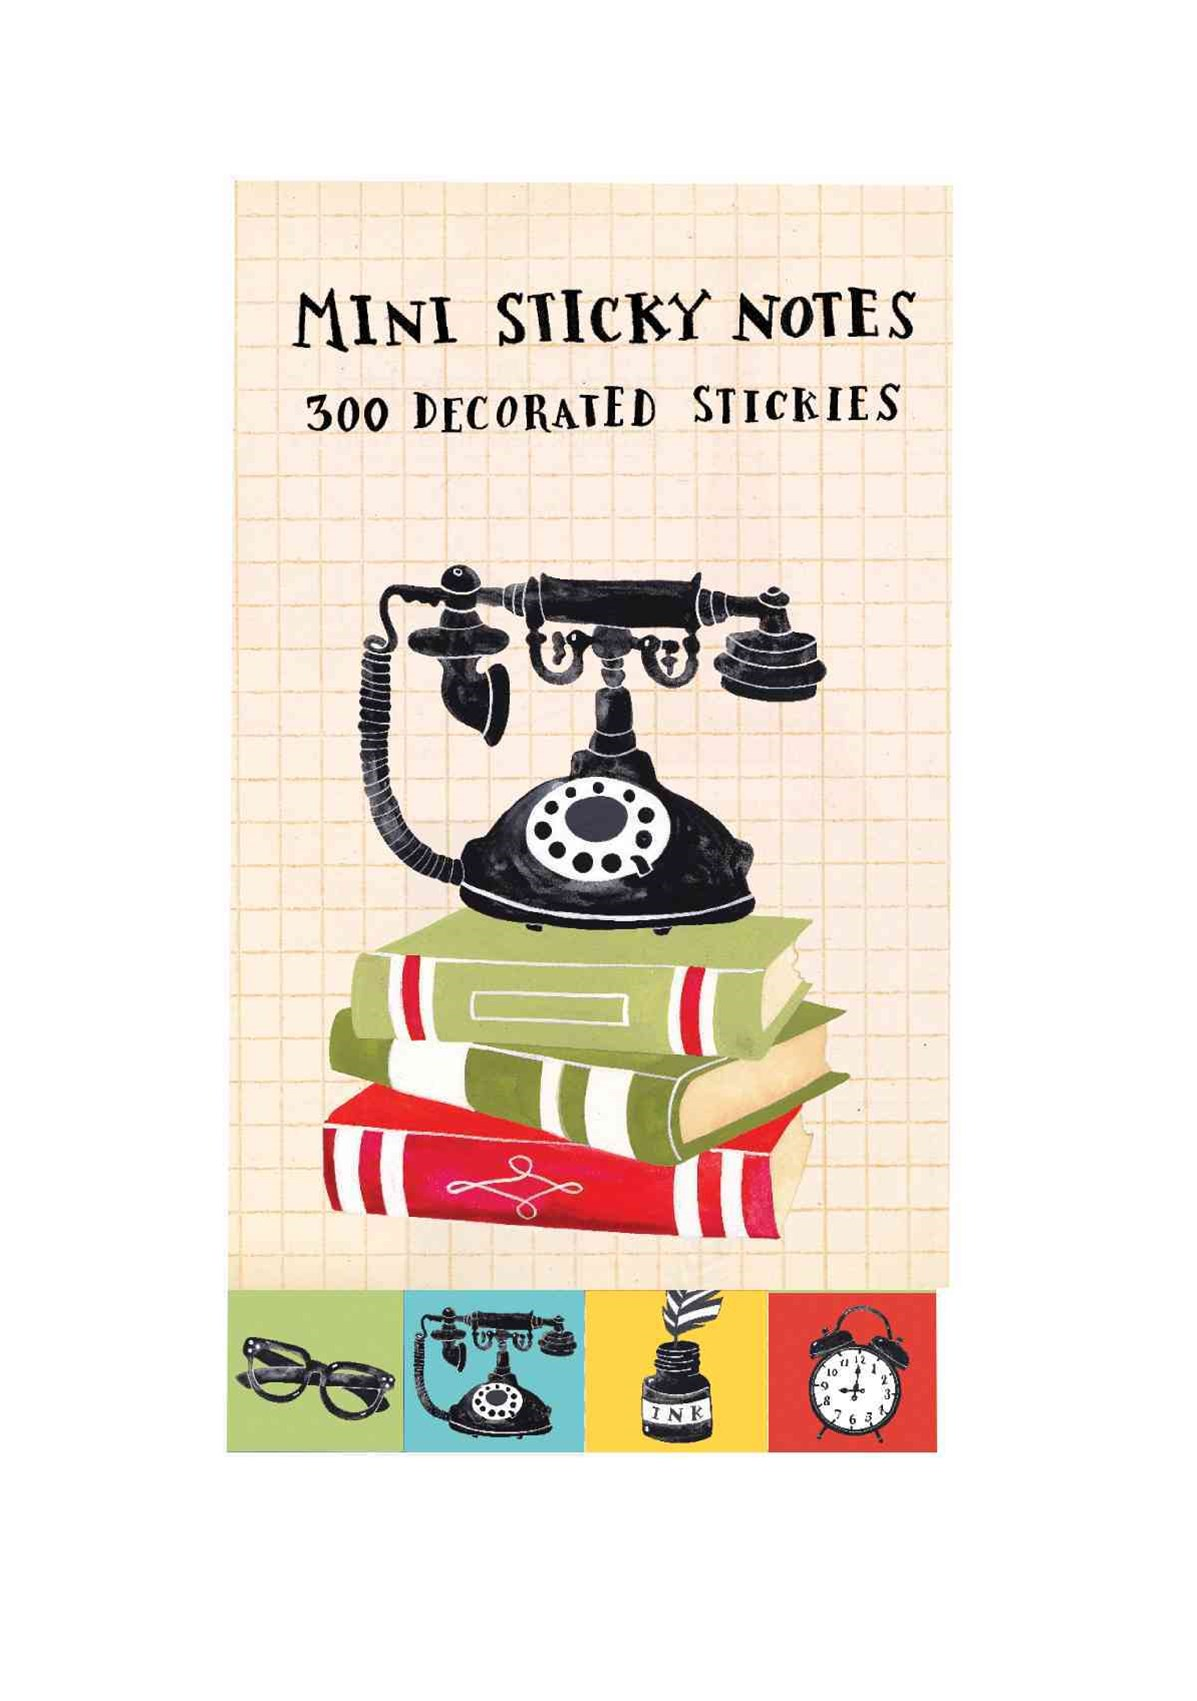 Vintage Telephone Mini Sticky Notes